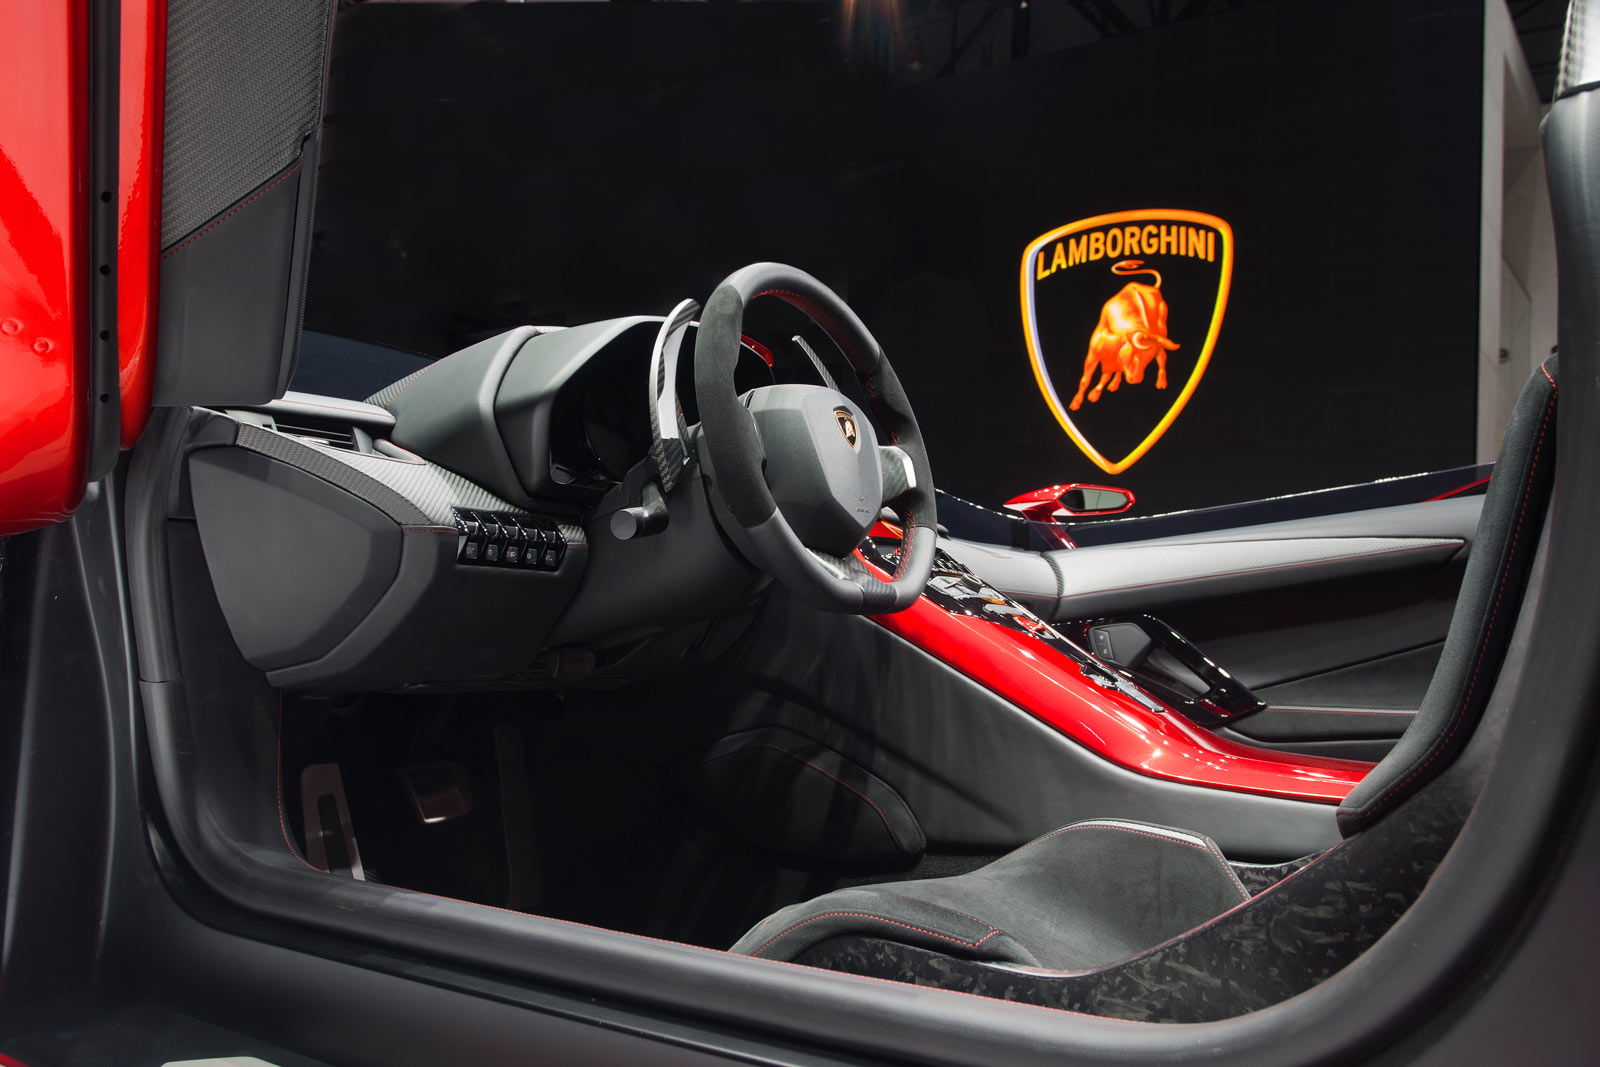 Lamborghini Aventador J Interior Car Body Design